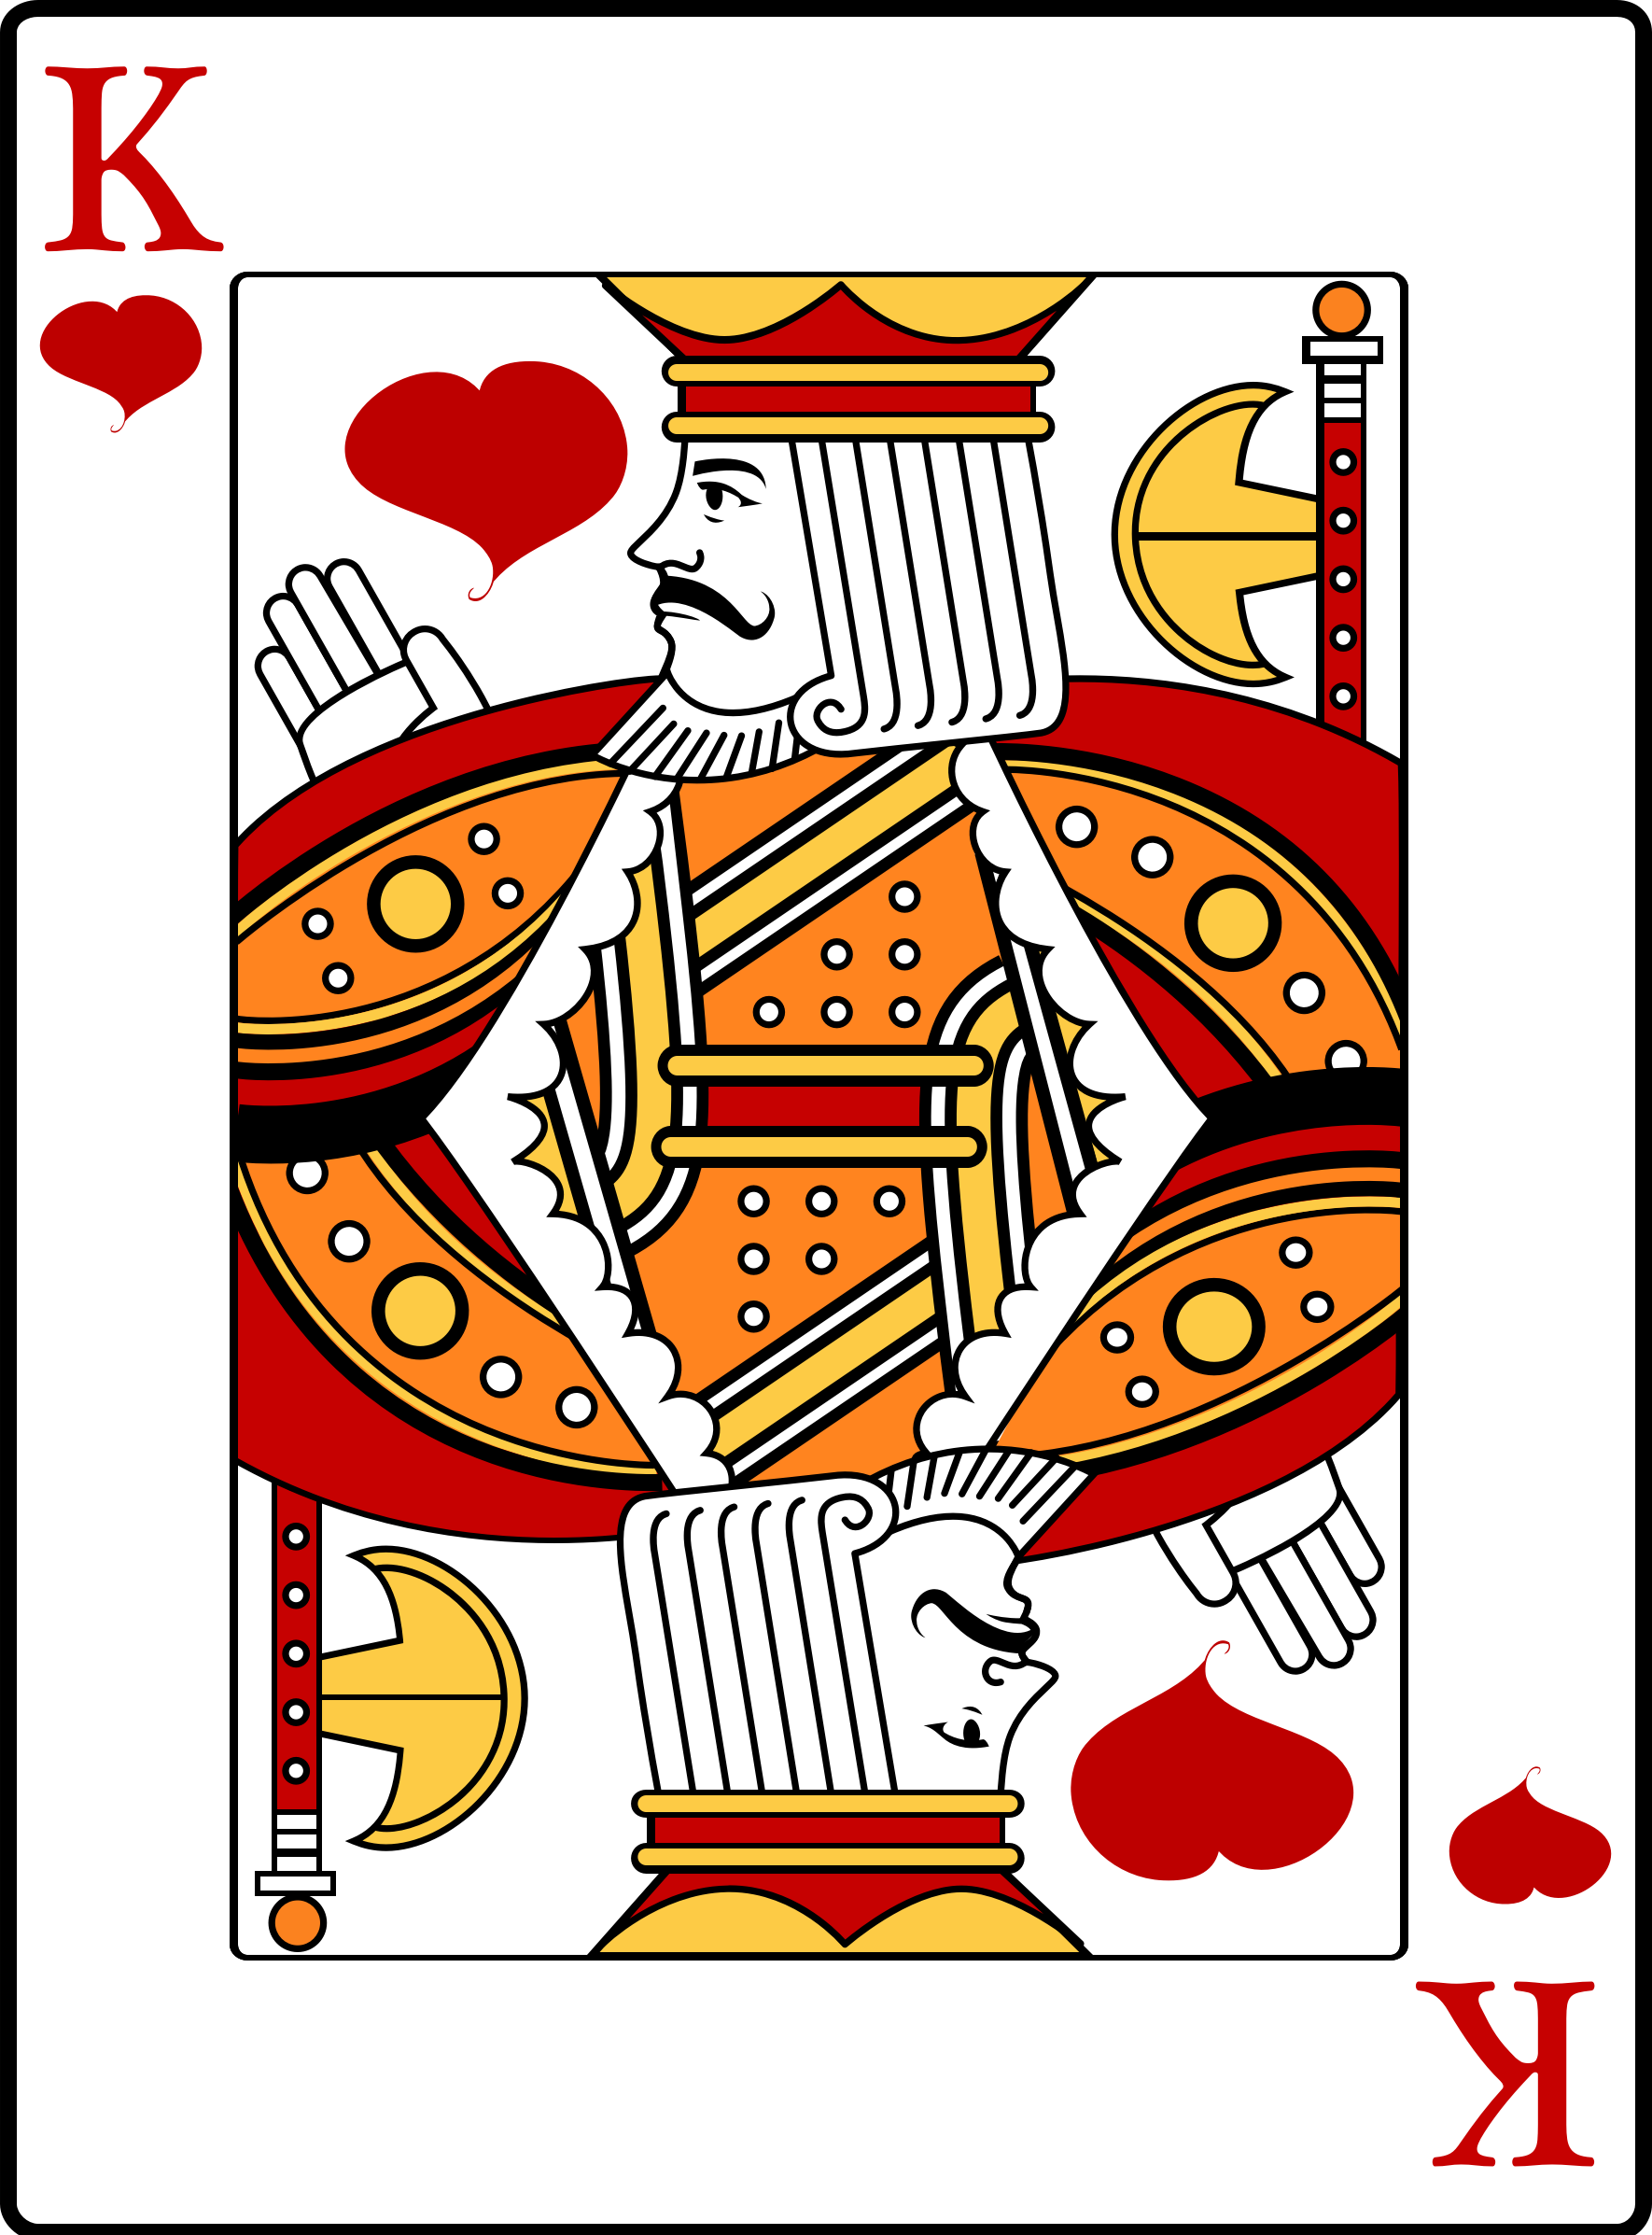 King of Hearts by casino